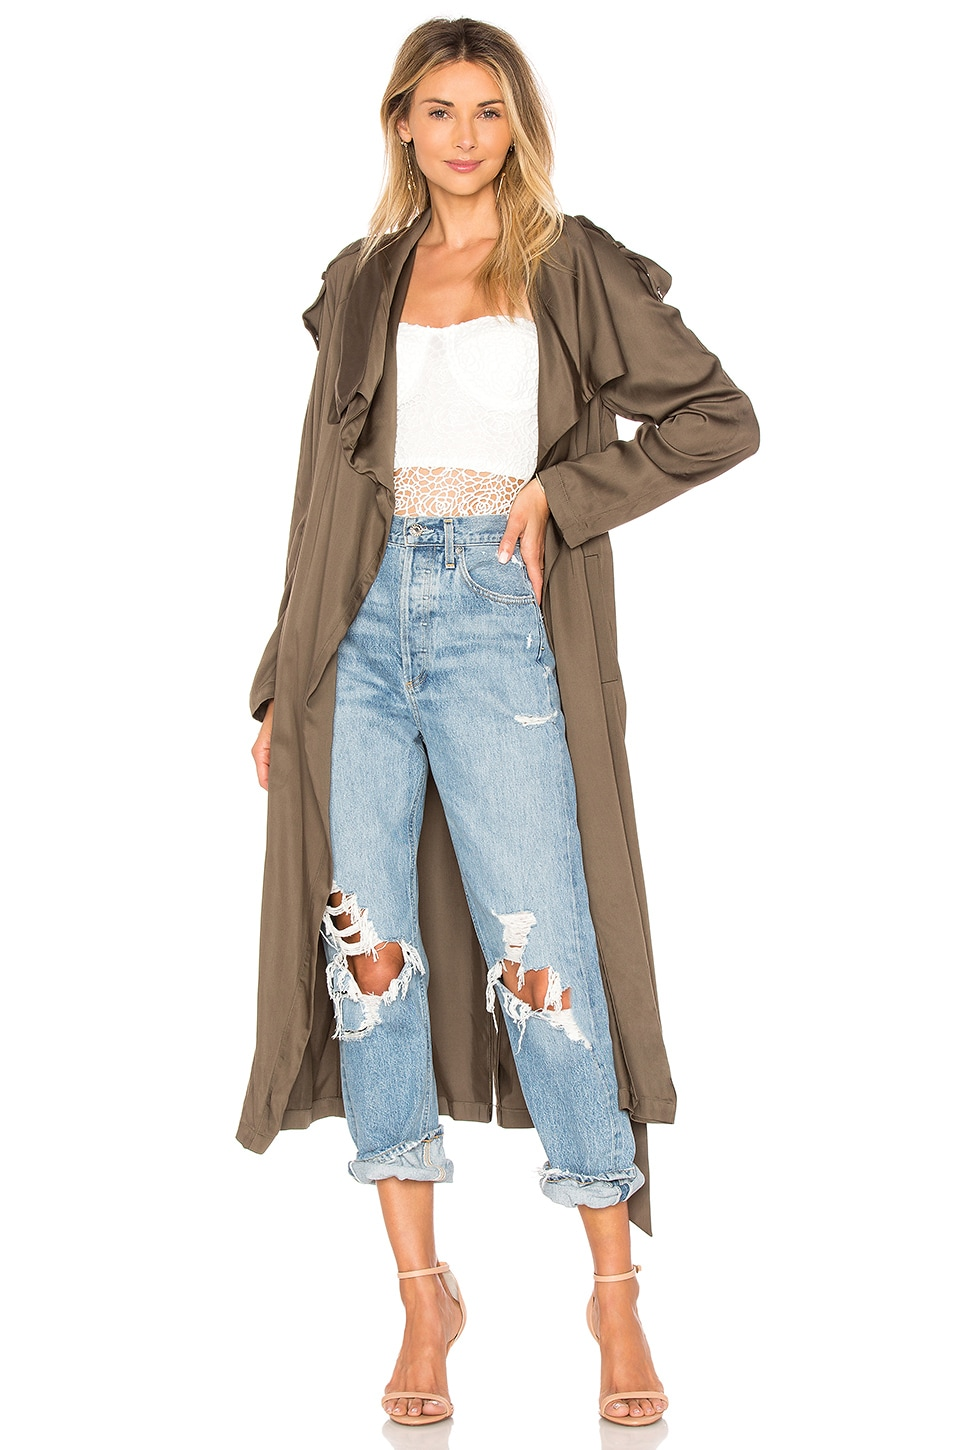 SOIA & KYO MARINELLA TRENCH COAT